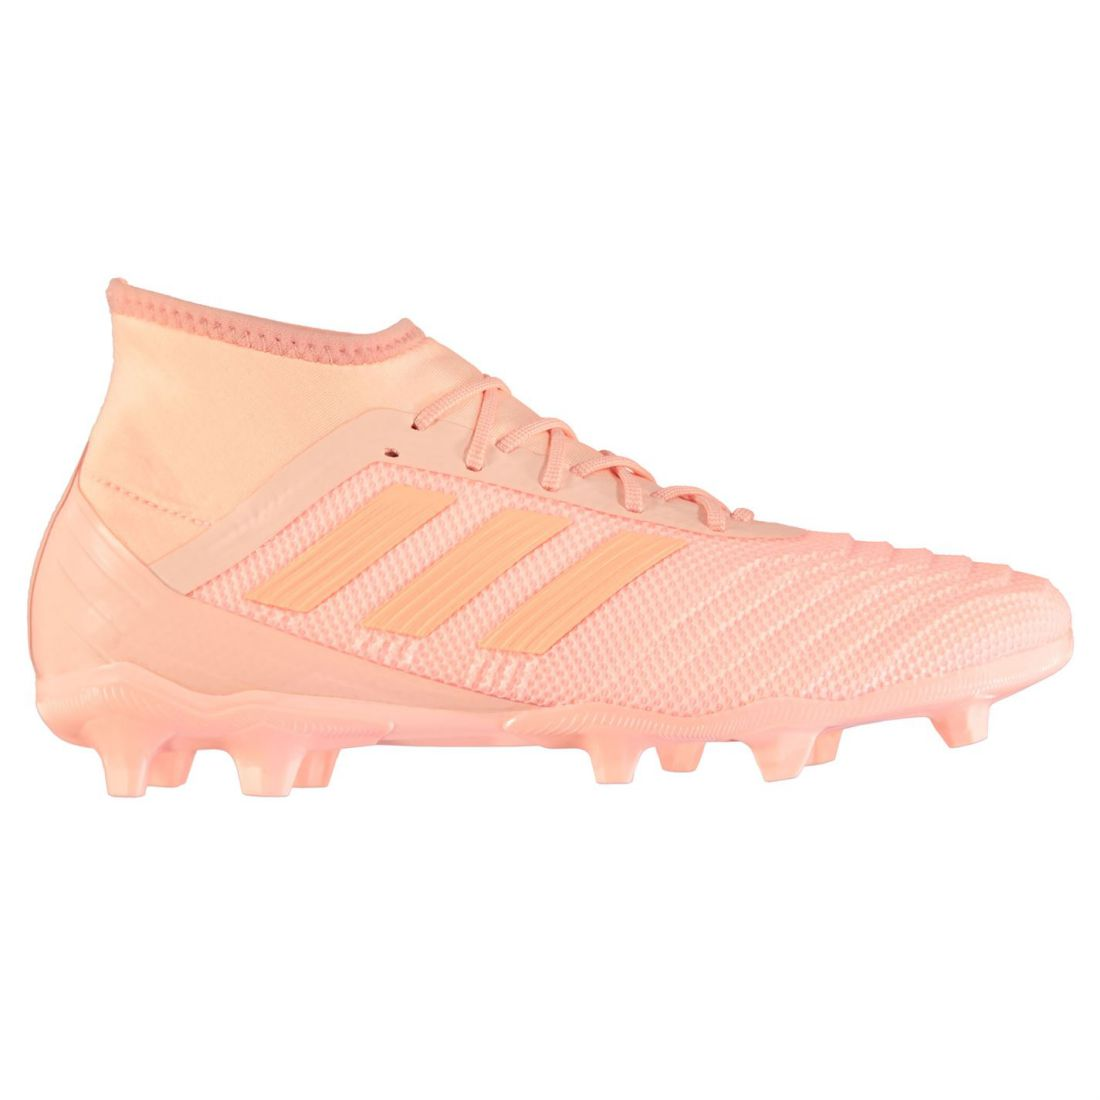 5985d5c8c9aa adidas Mens Predator 18.2 FG Football Boots Firm Ground Lace Up Studs  Stretch